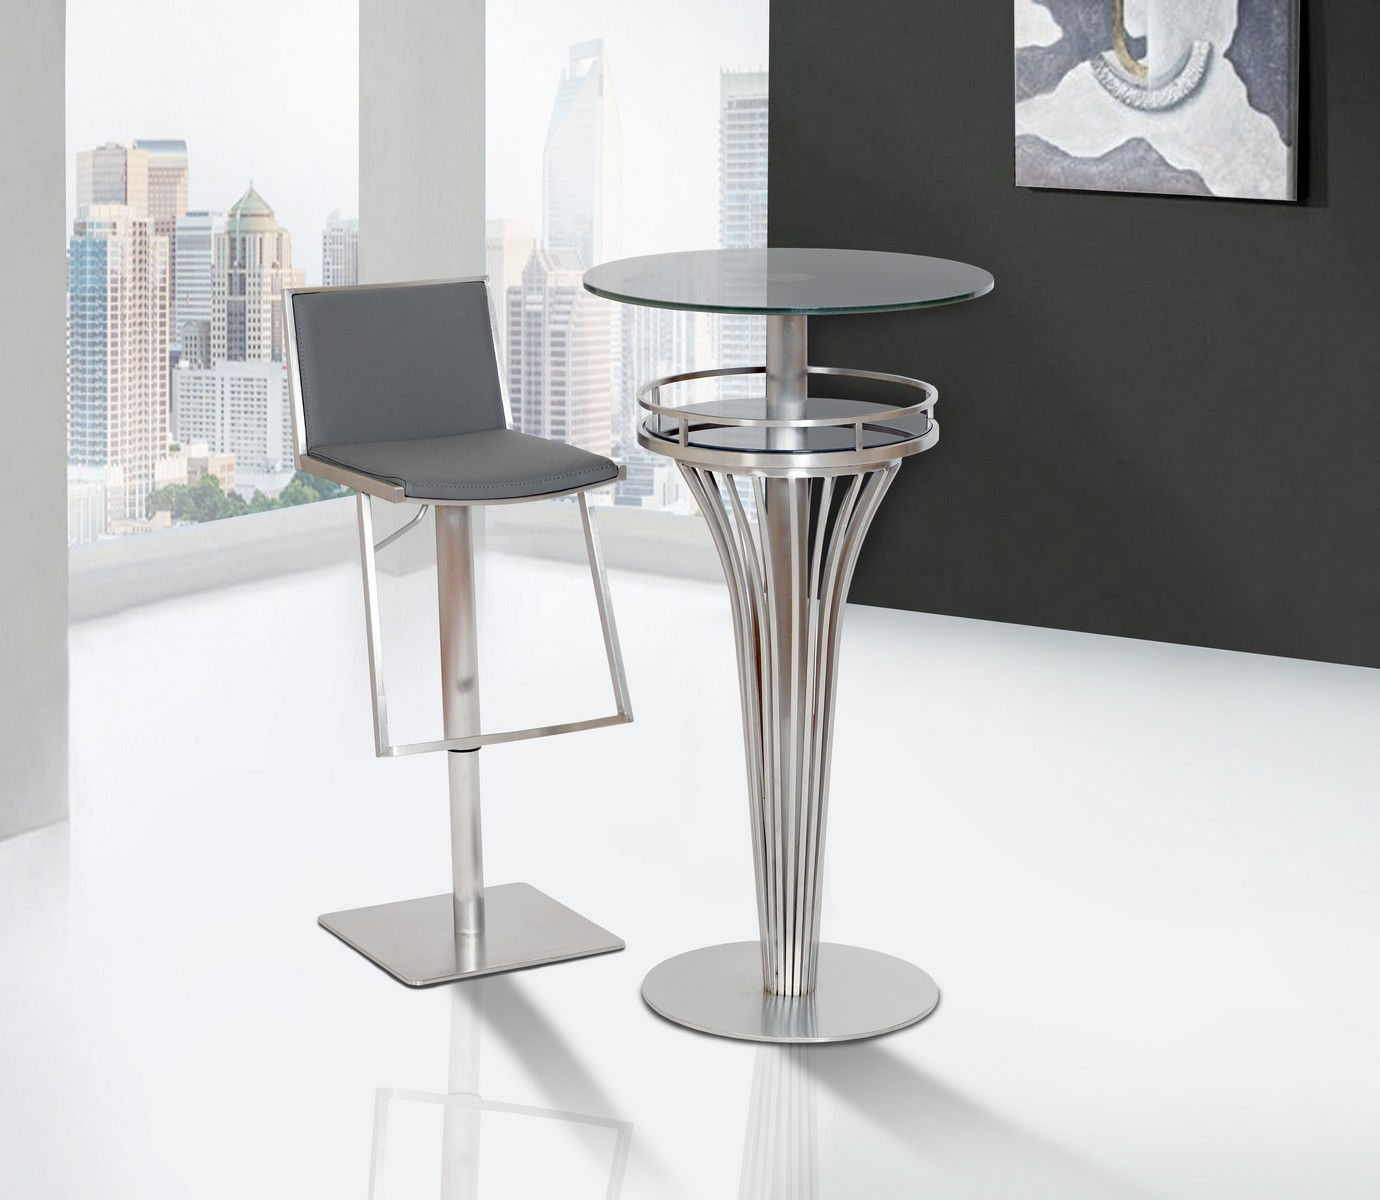 Armen Living Ibiza Adjustable Brushed Stainless Steel Barstool in Gray Leatherette